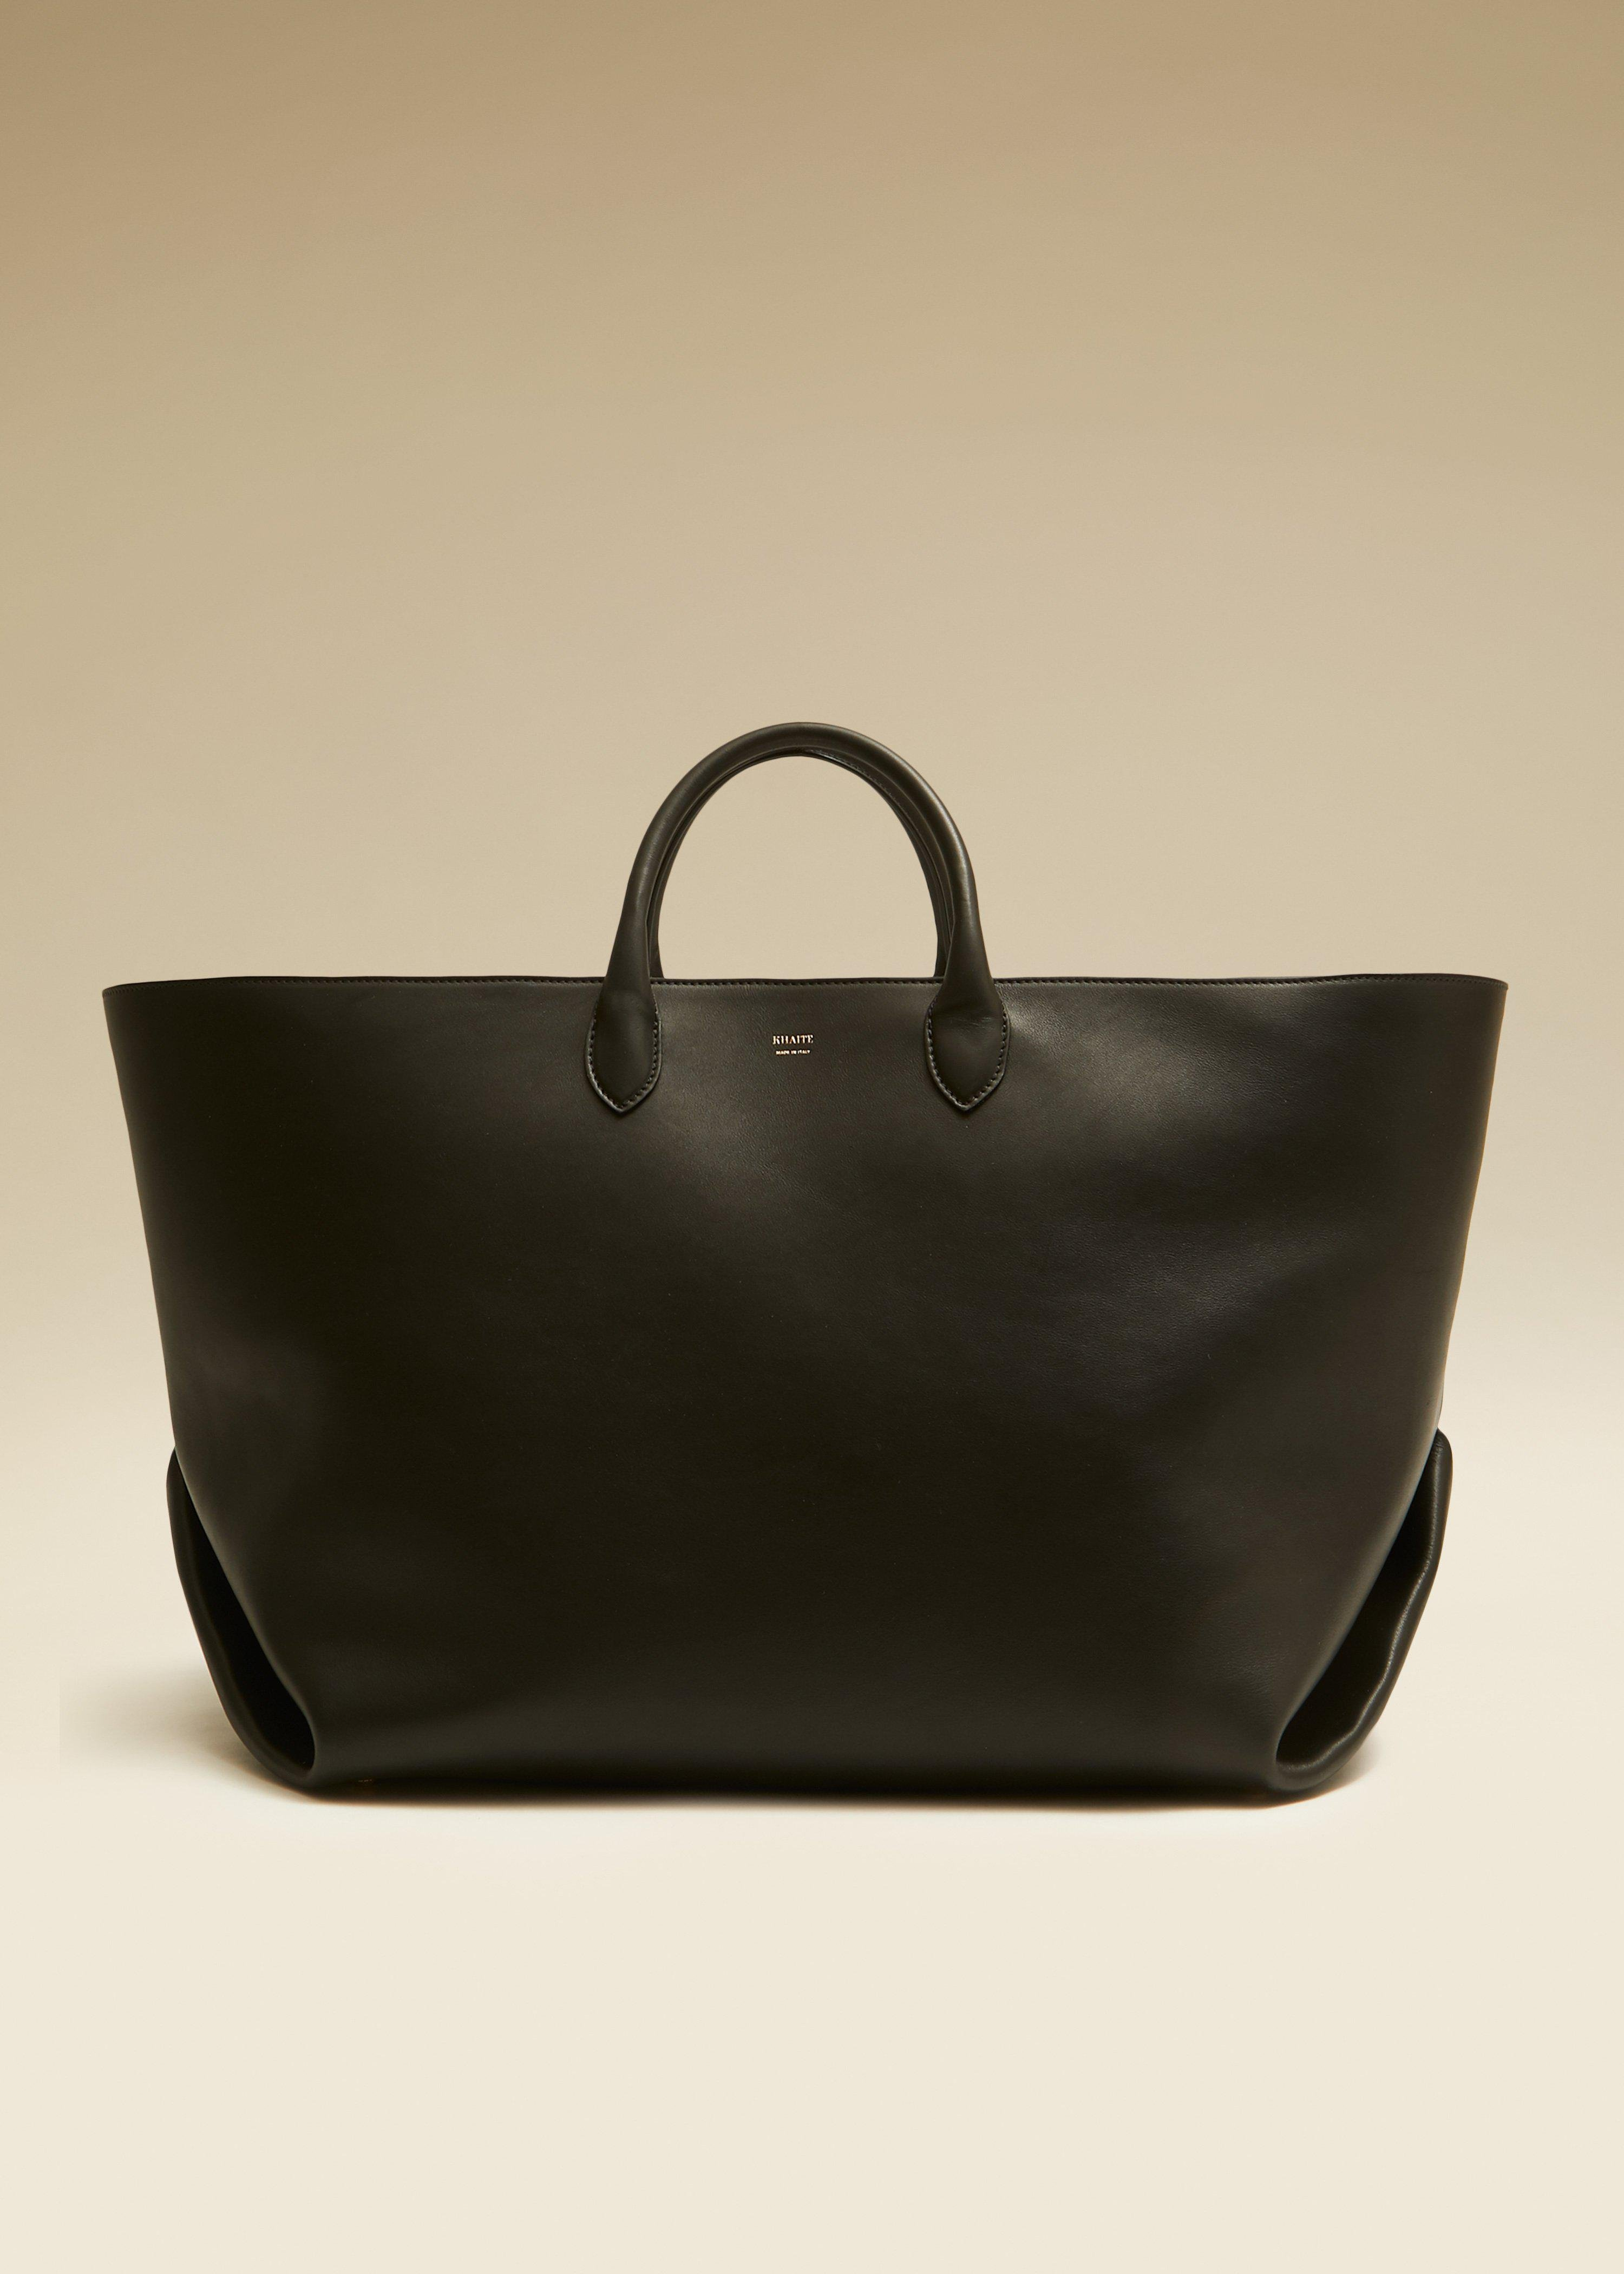 The Large Amelia Tote in Black Leather